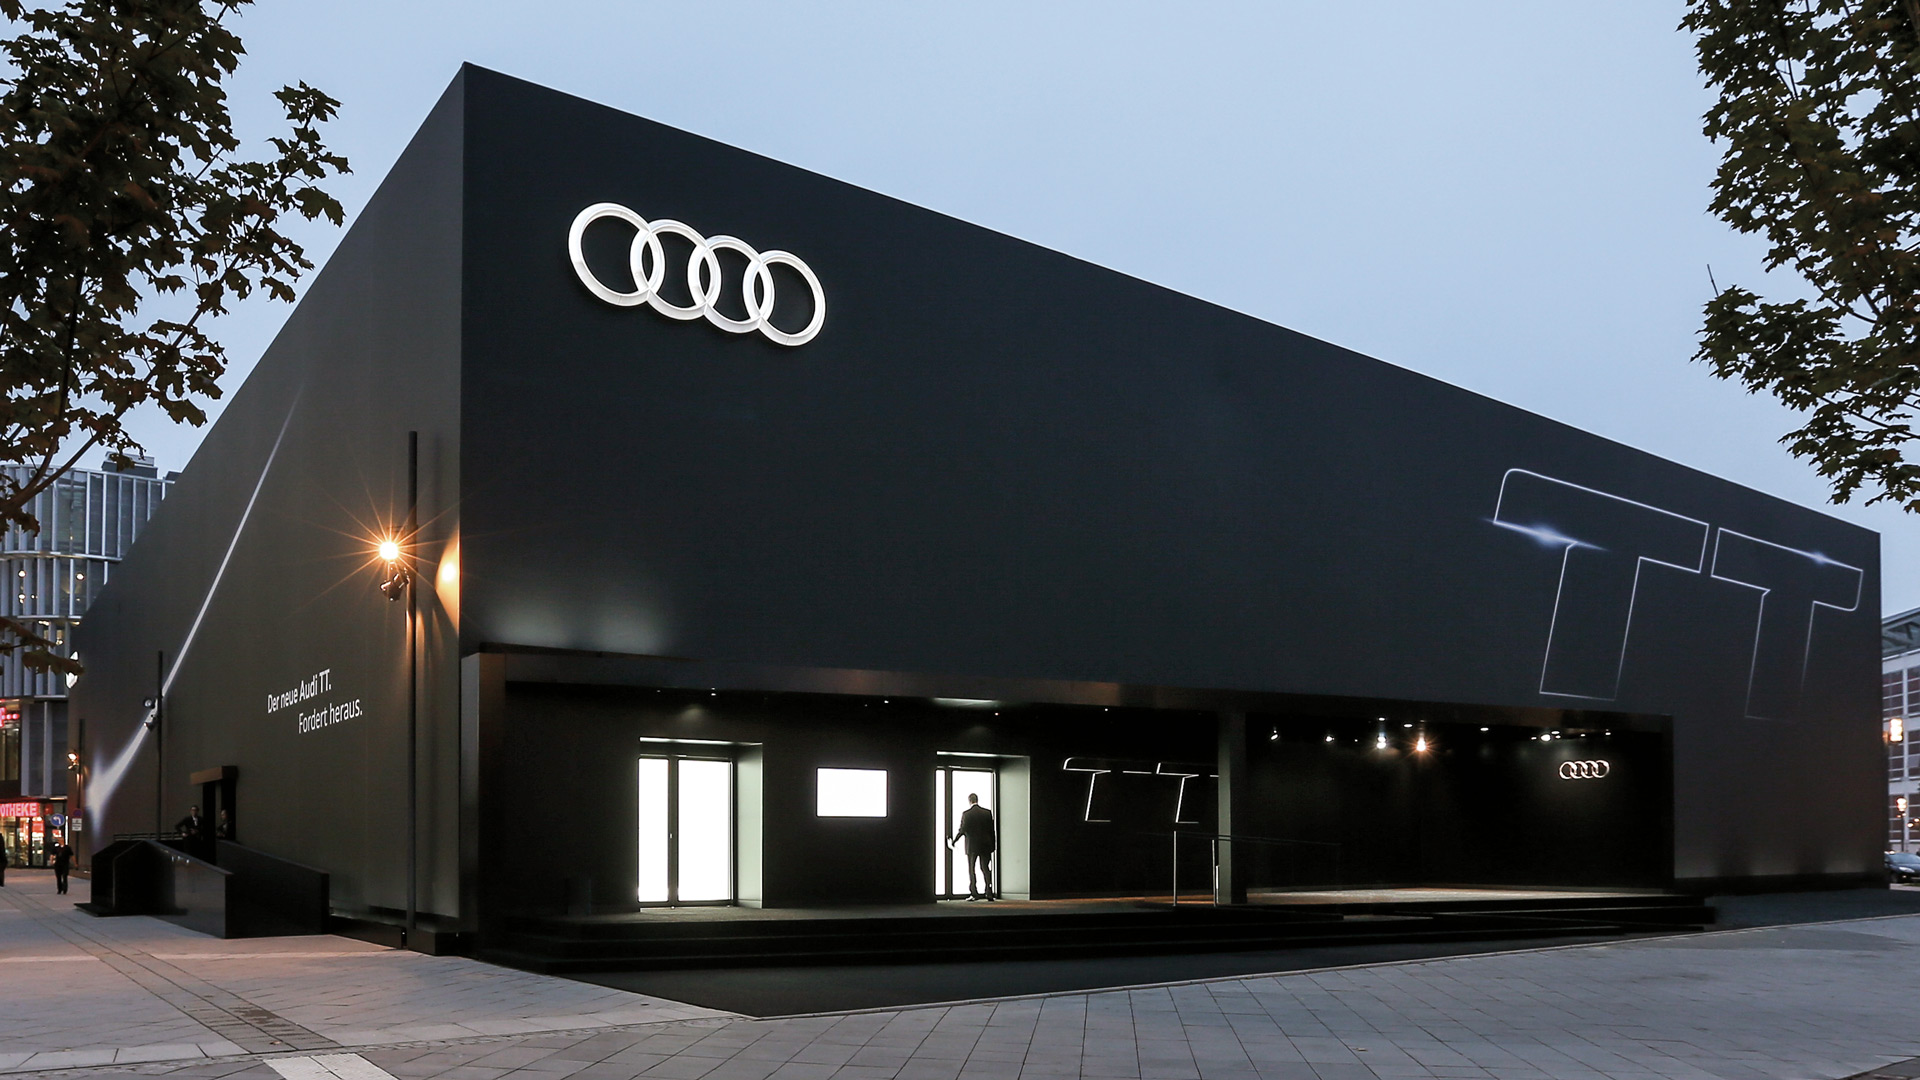 The black building from the outside. On the top left is the Audi logo, on the right two large Ts.